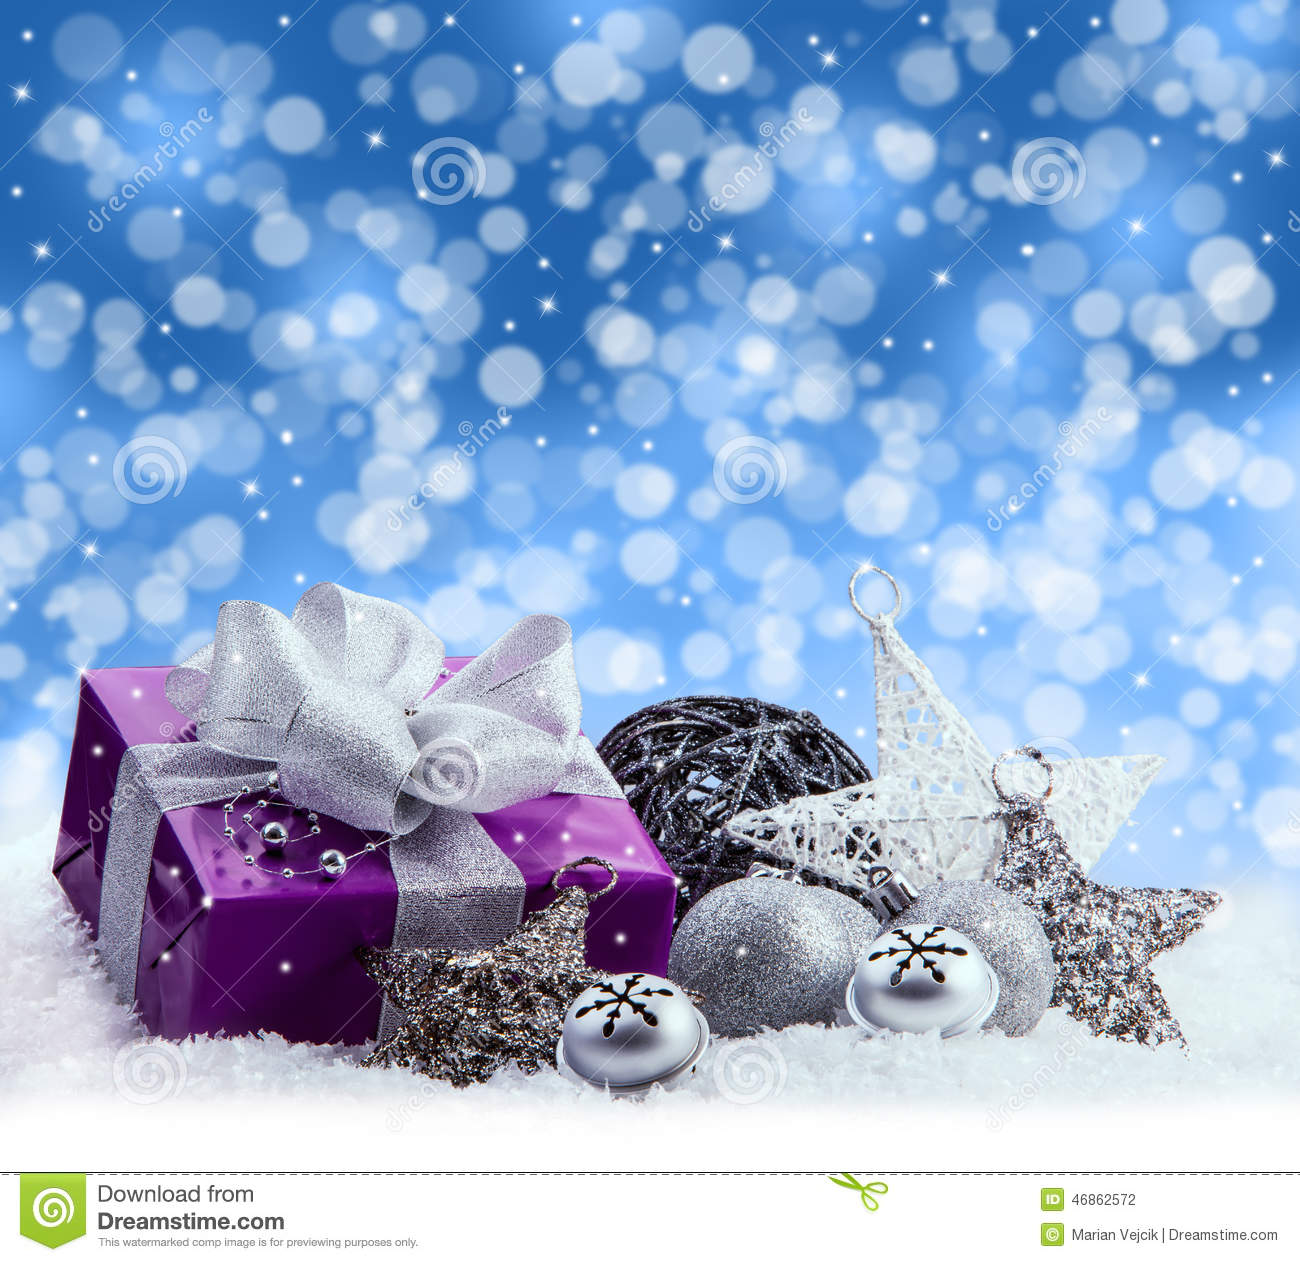 3d Xmas Wallpaper Free Purple Christmas Package Gift Of A Silver Ribbon Jingle